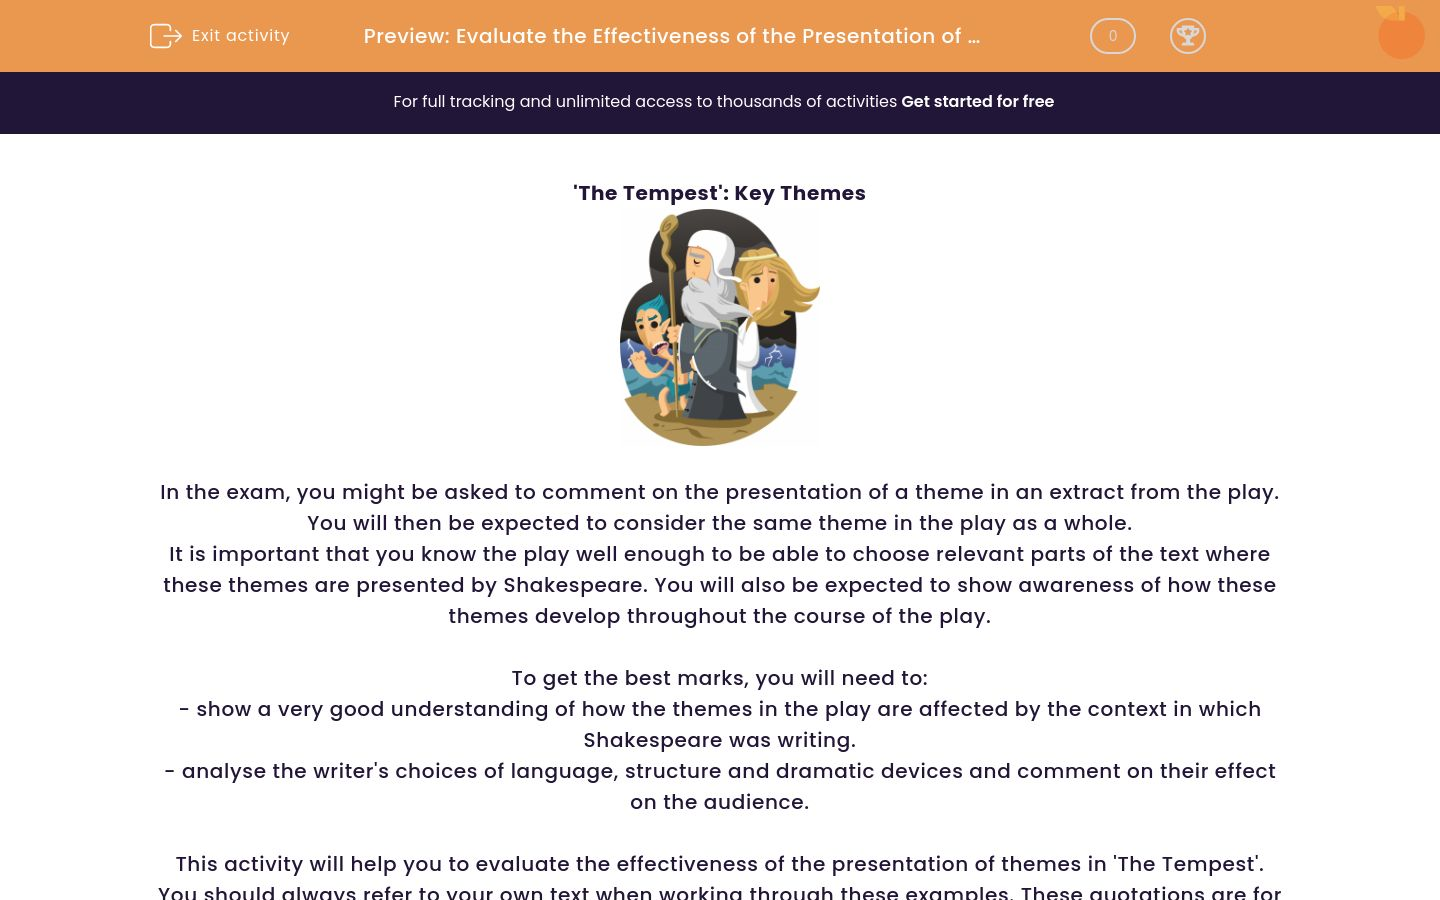 'Evaluate the Effectiveness of the Presentation of Themes in 'The Tempest'' worksheet